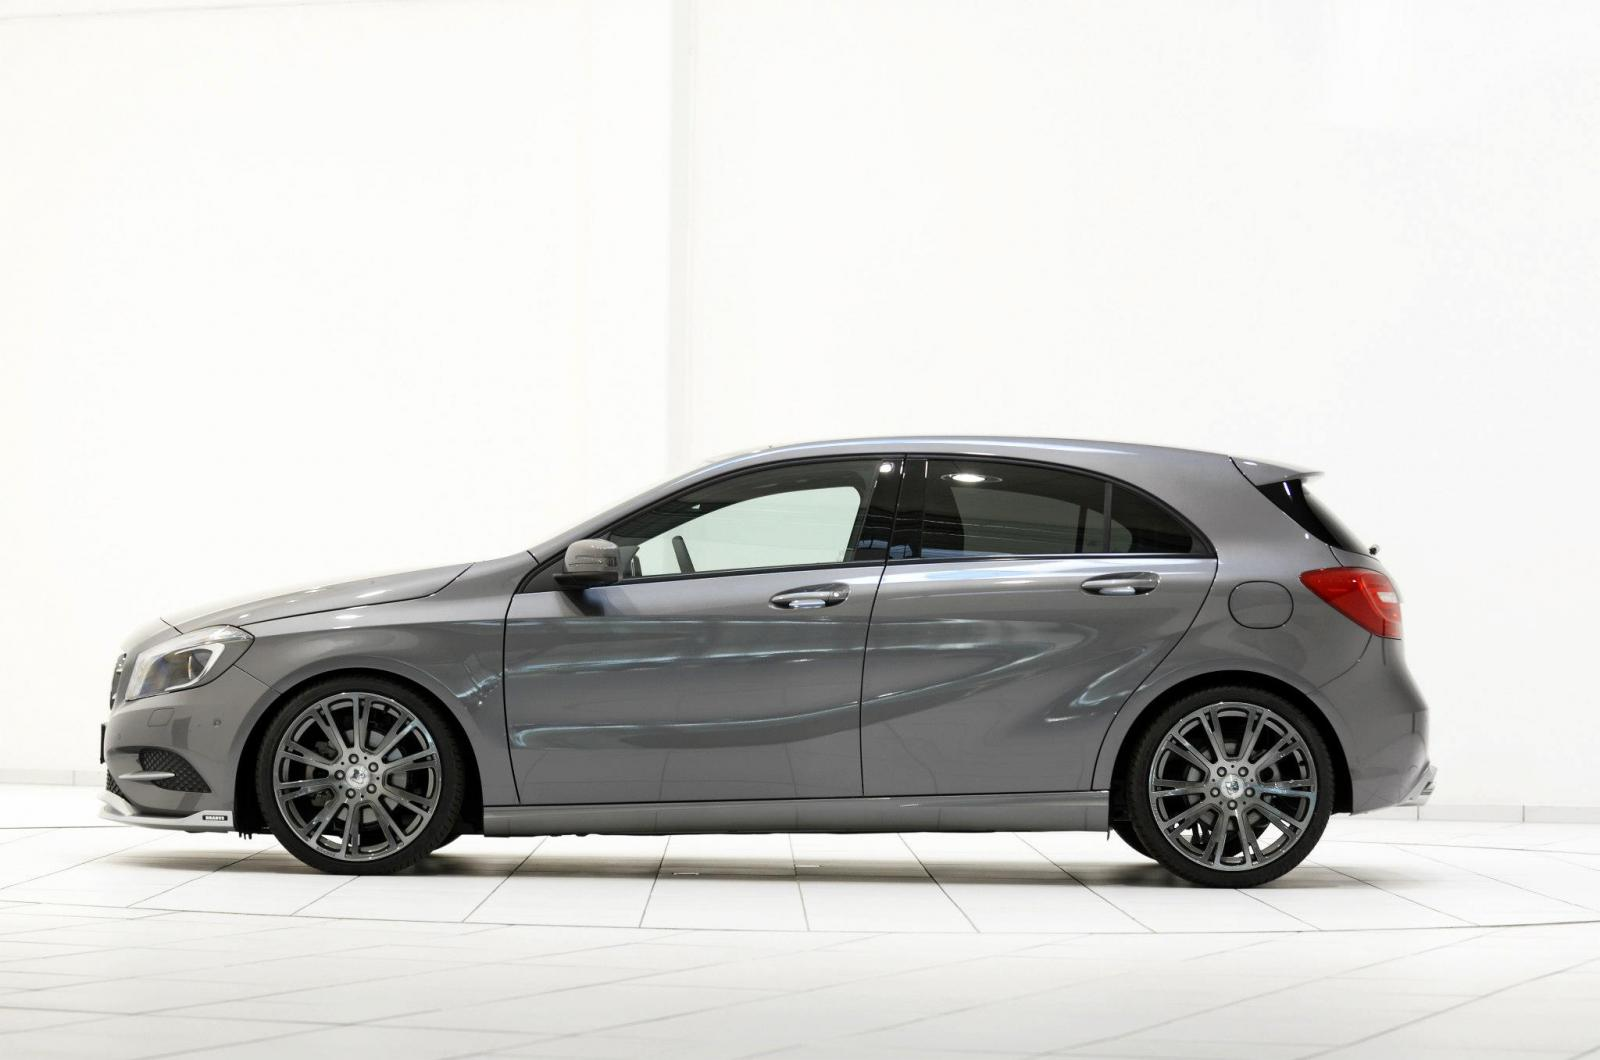 Mercedes A200 Cdi Gets More Power From Brabus Autoevolution